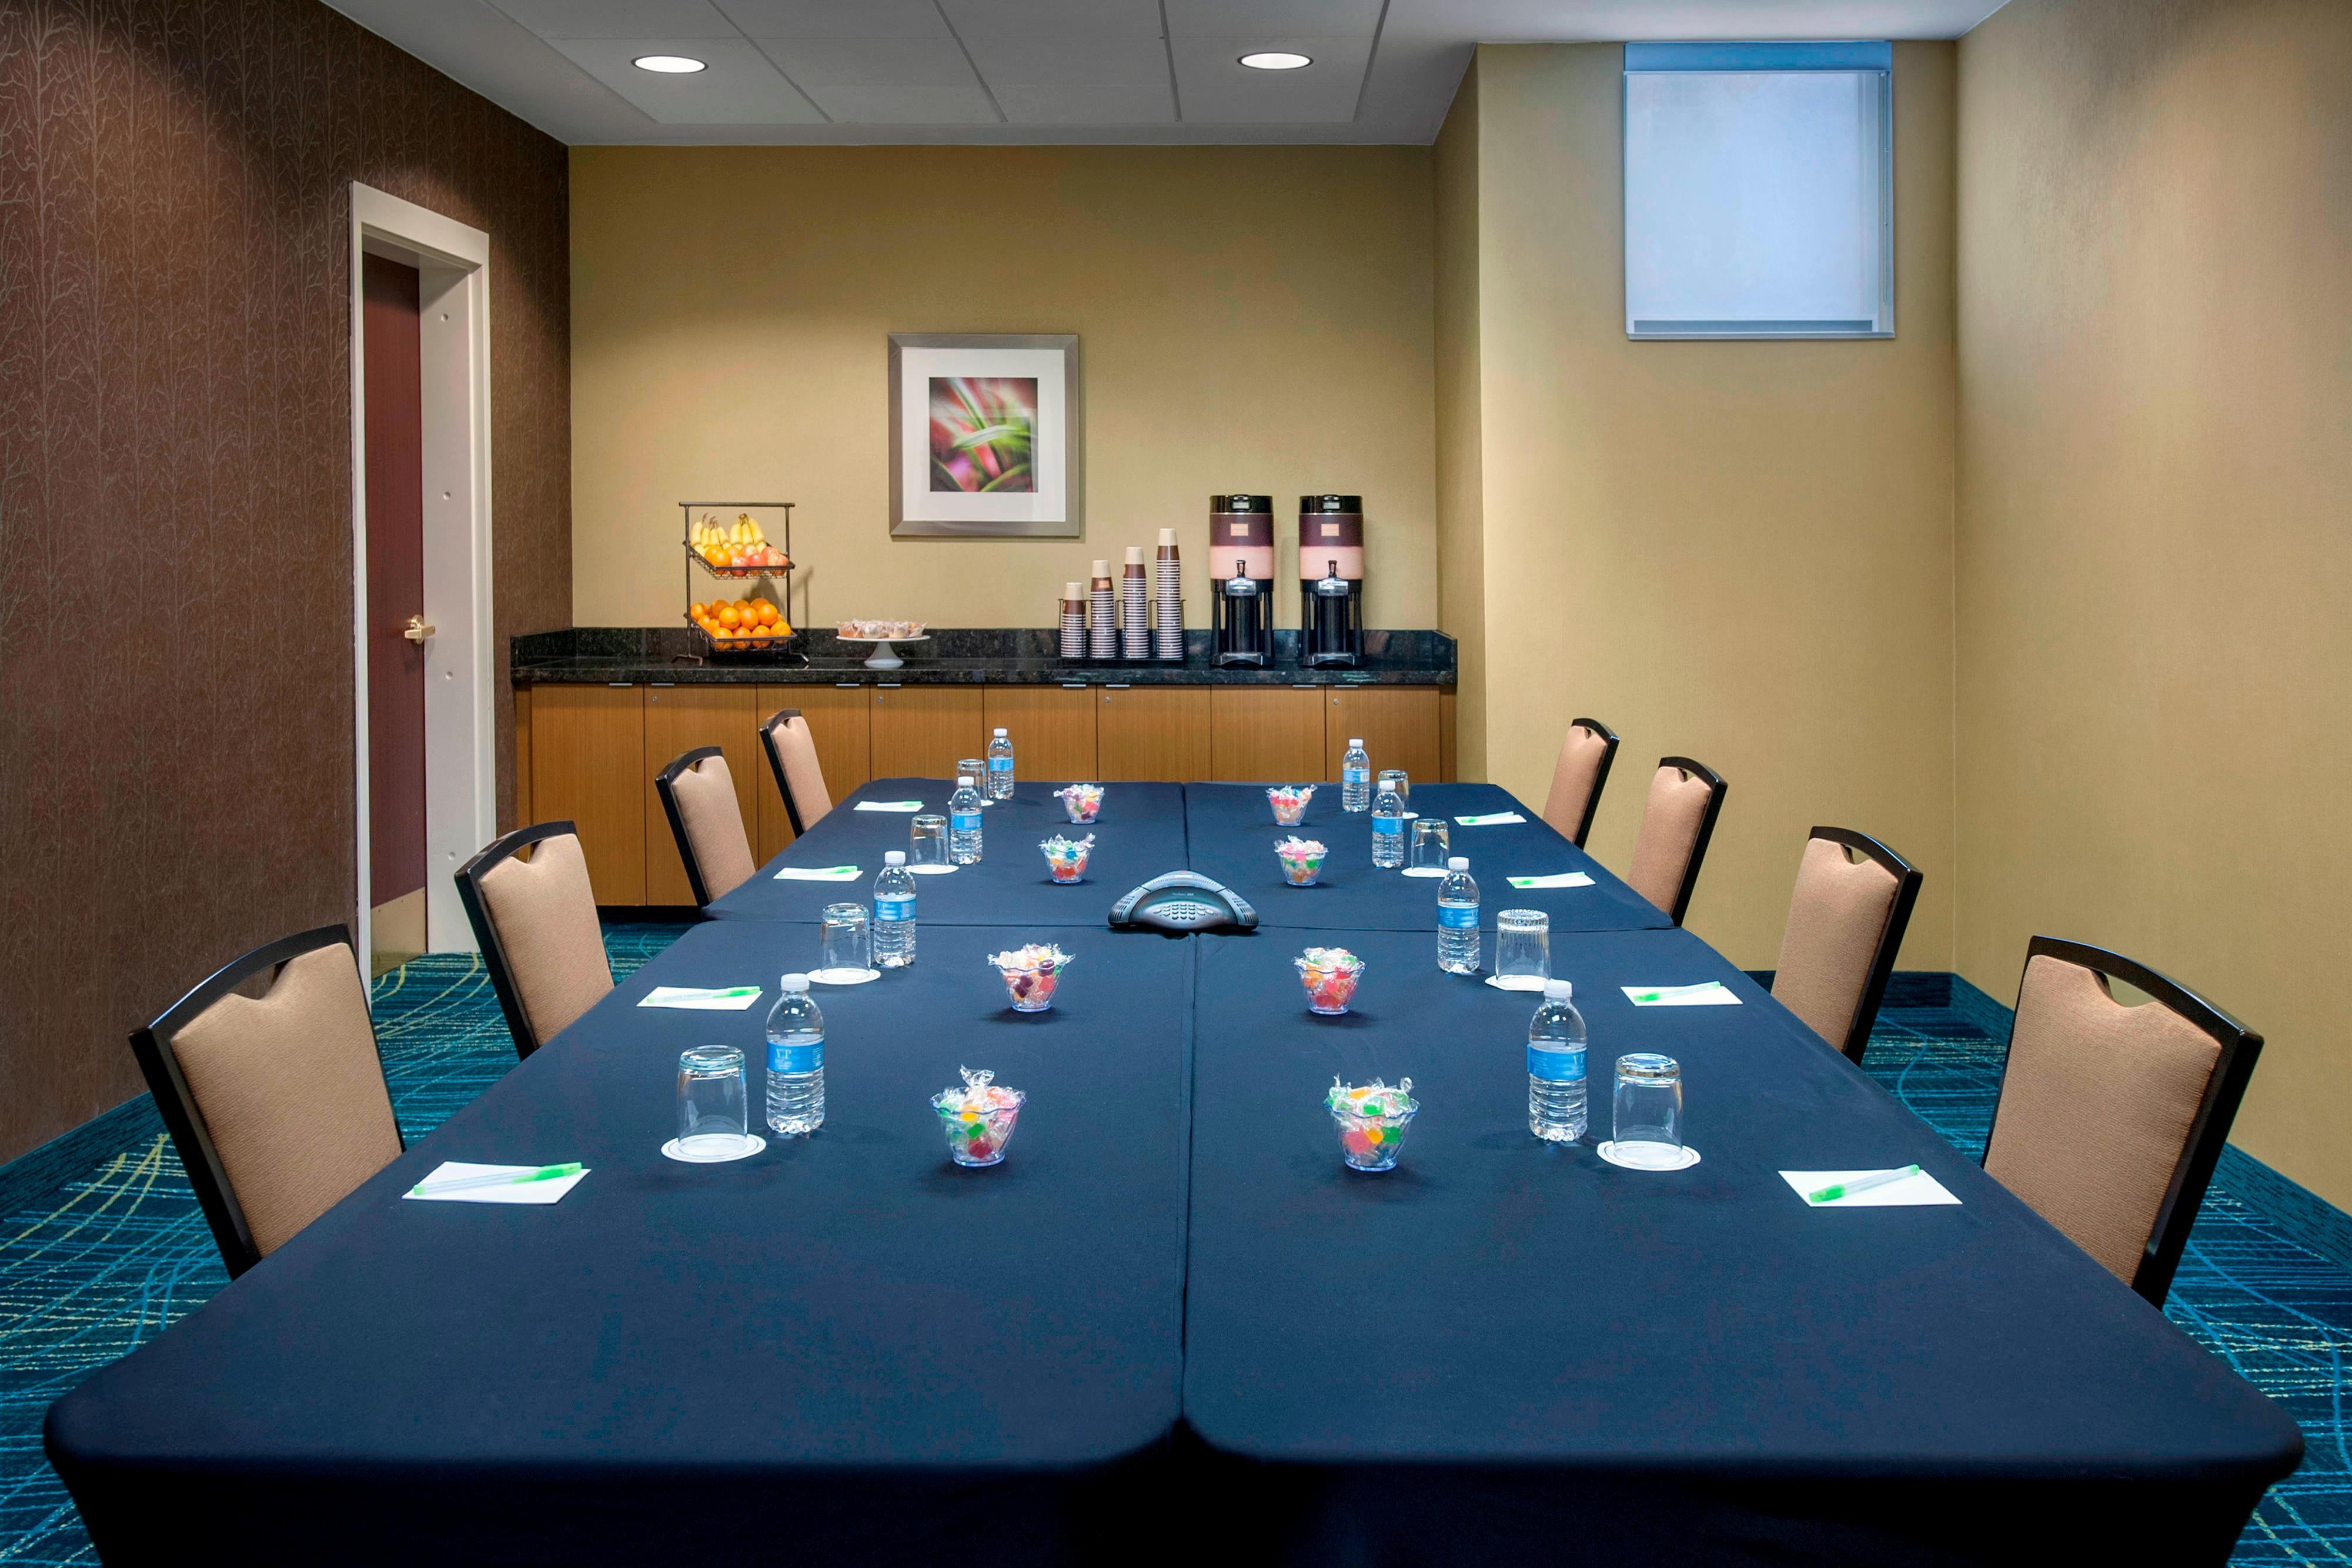 Meeting Room – Boardroom Setup